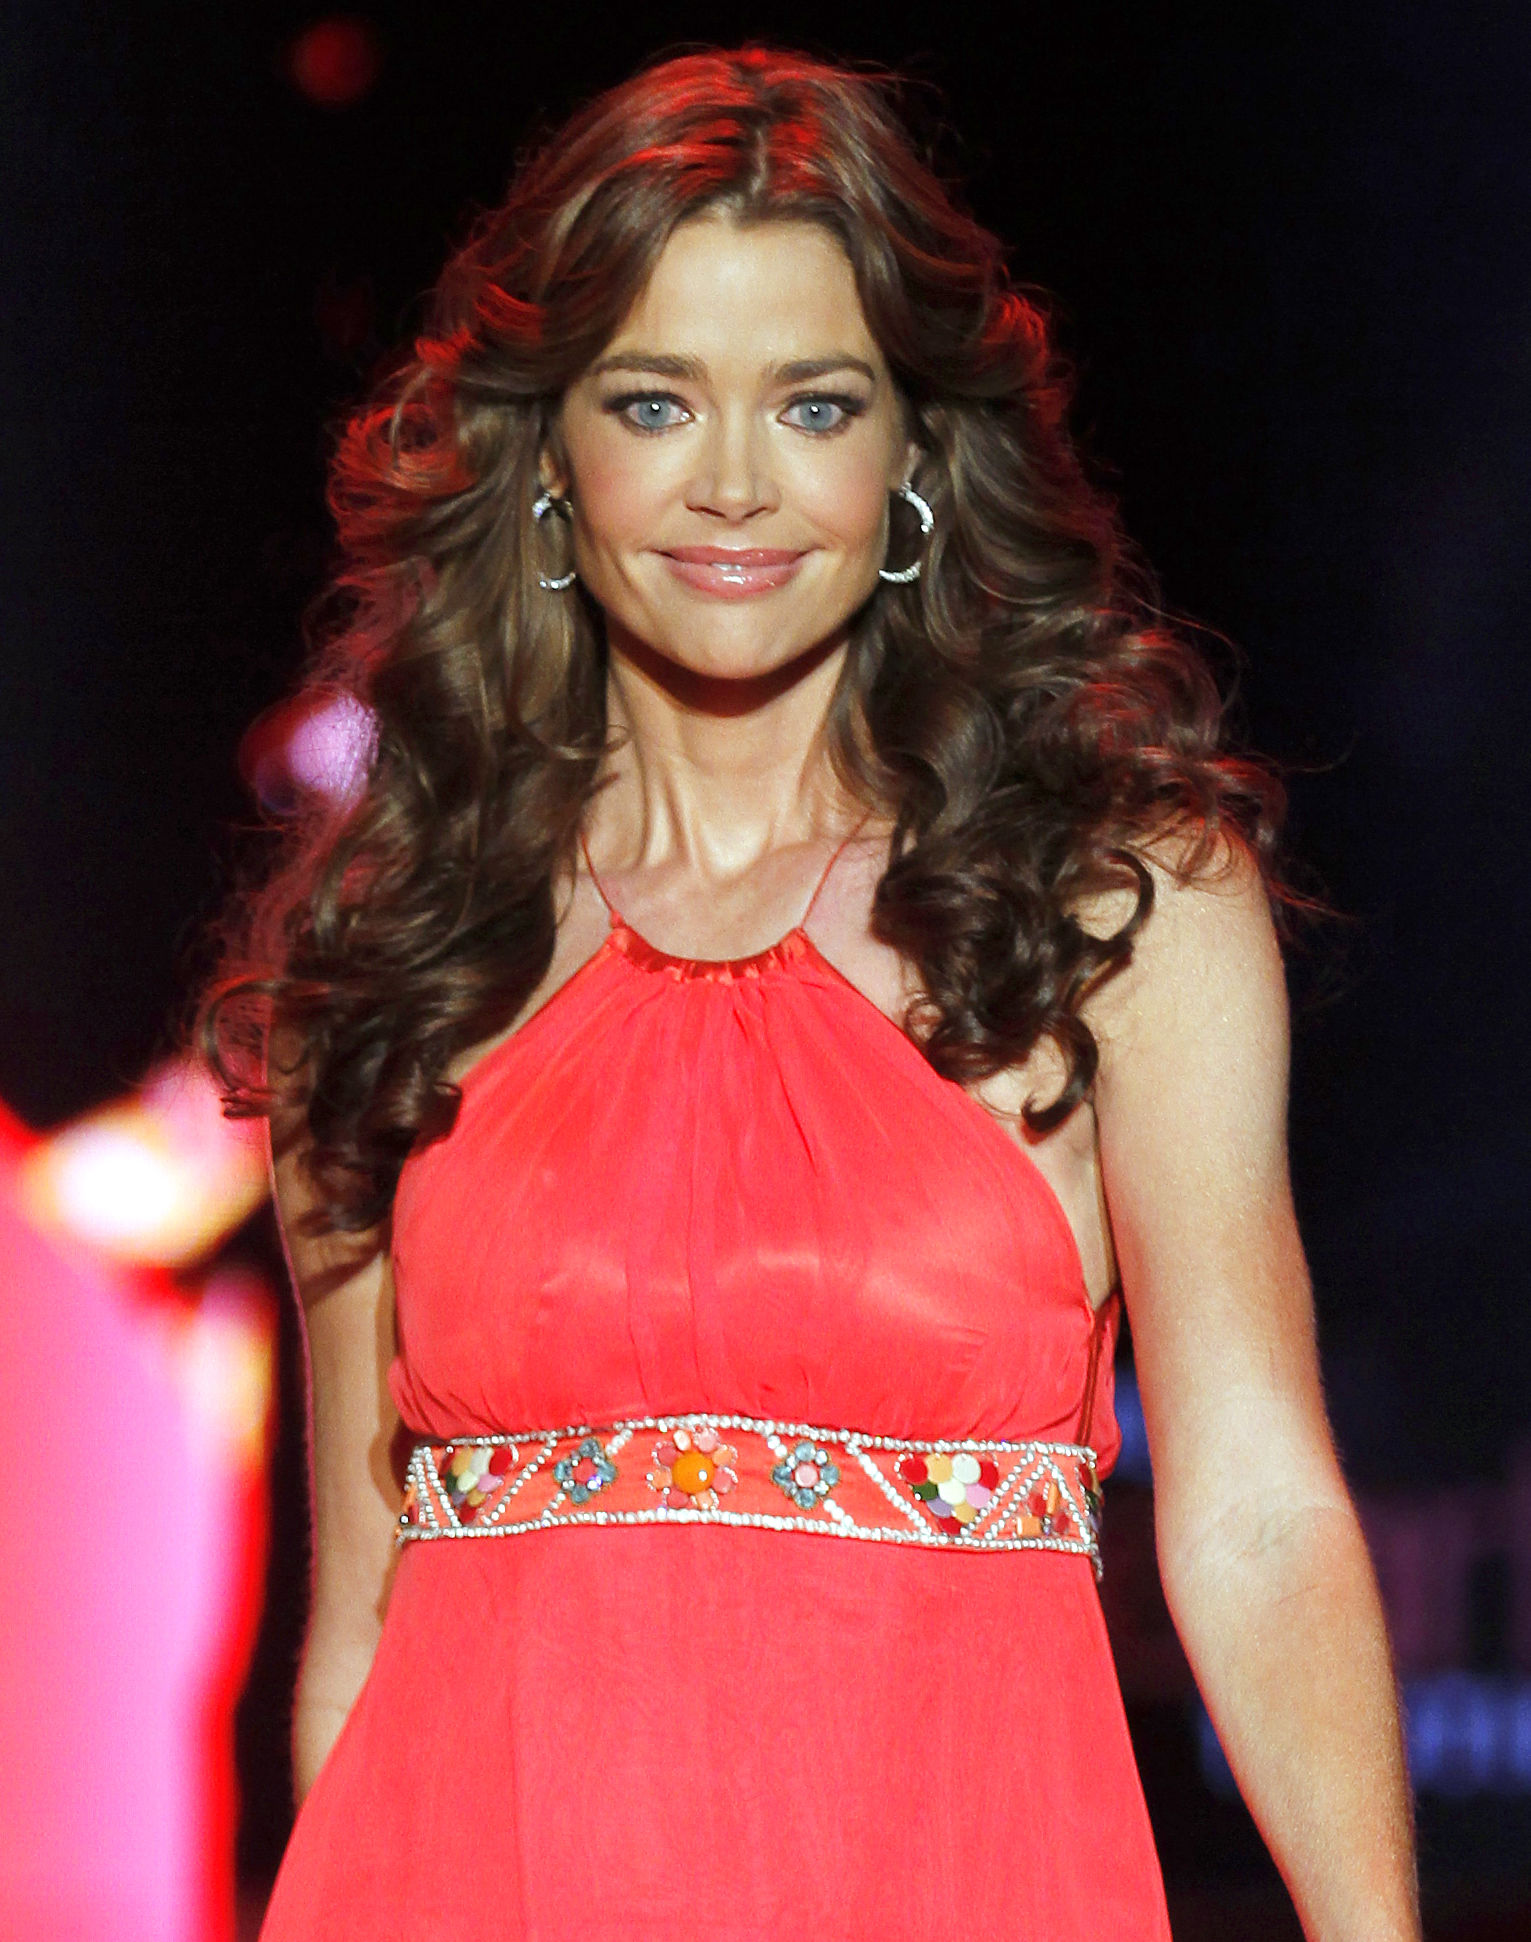 Photo of Denise Richards: American actress and model